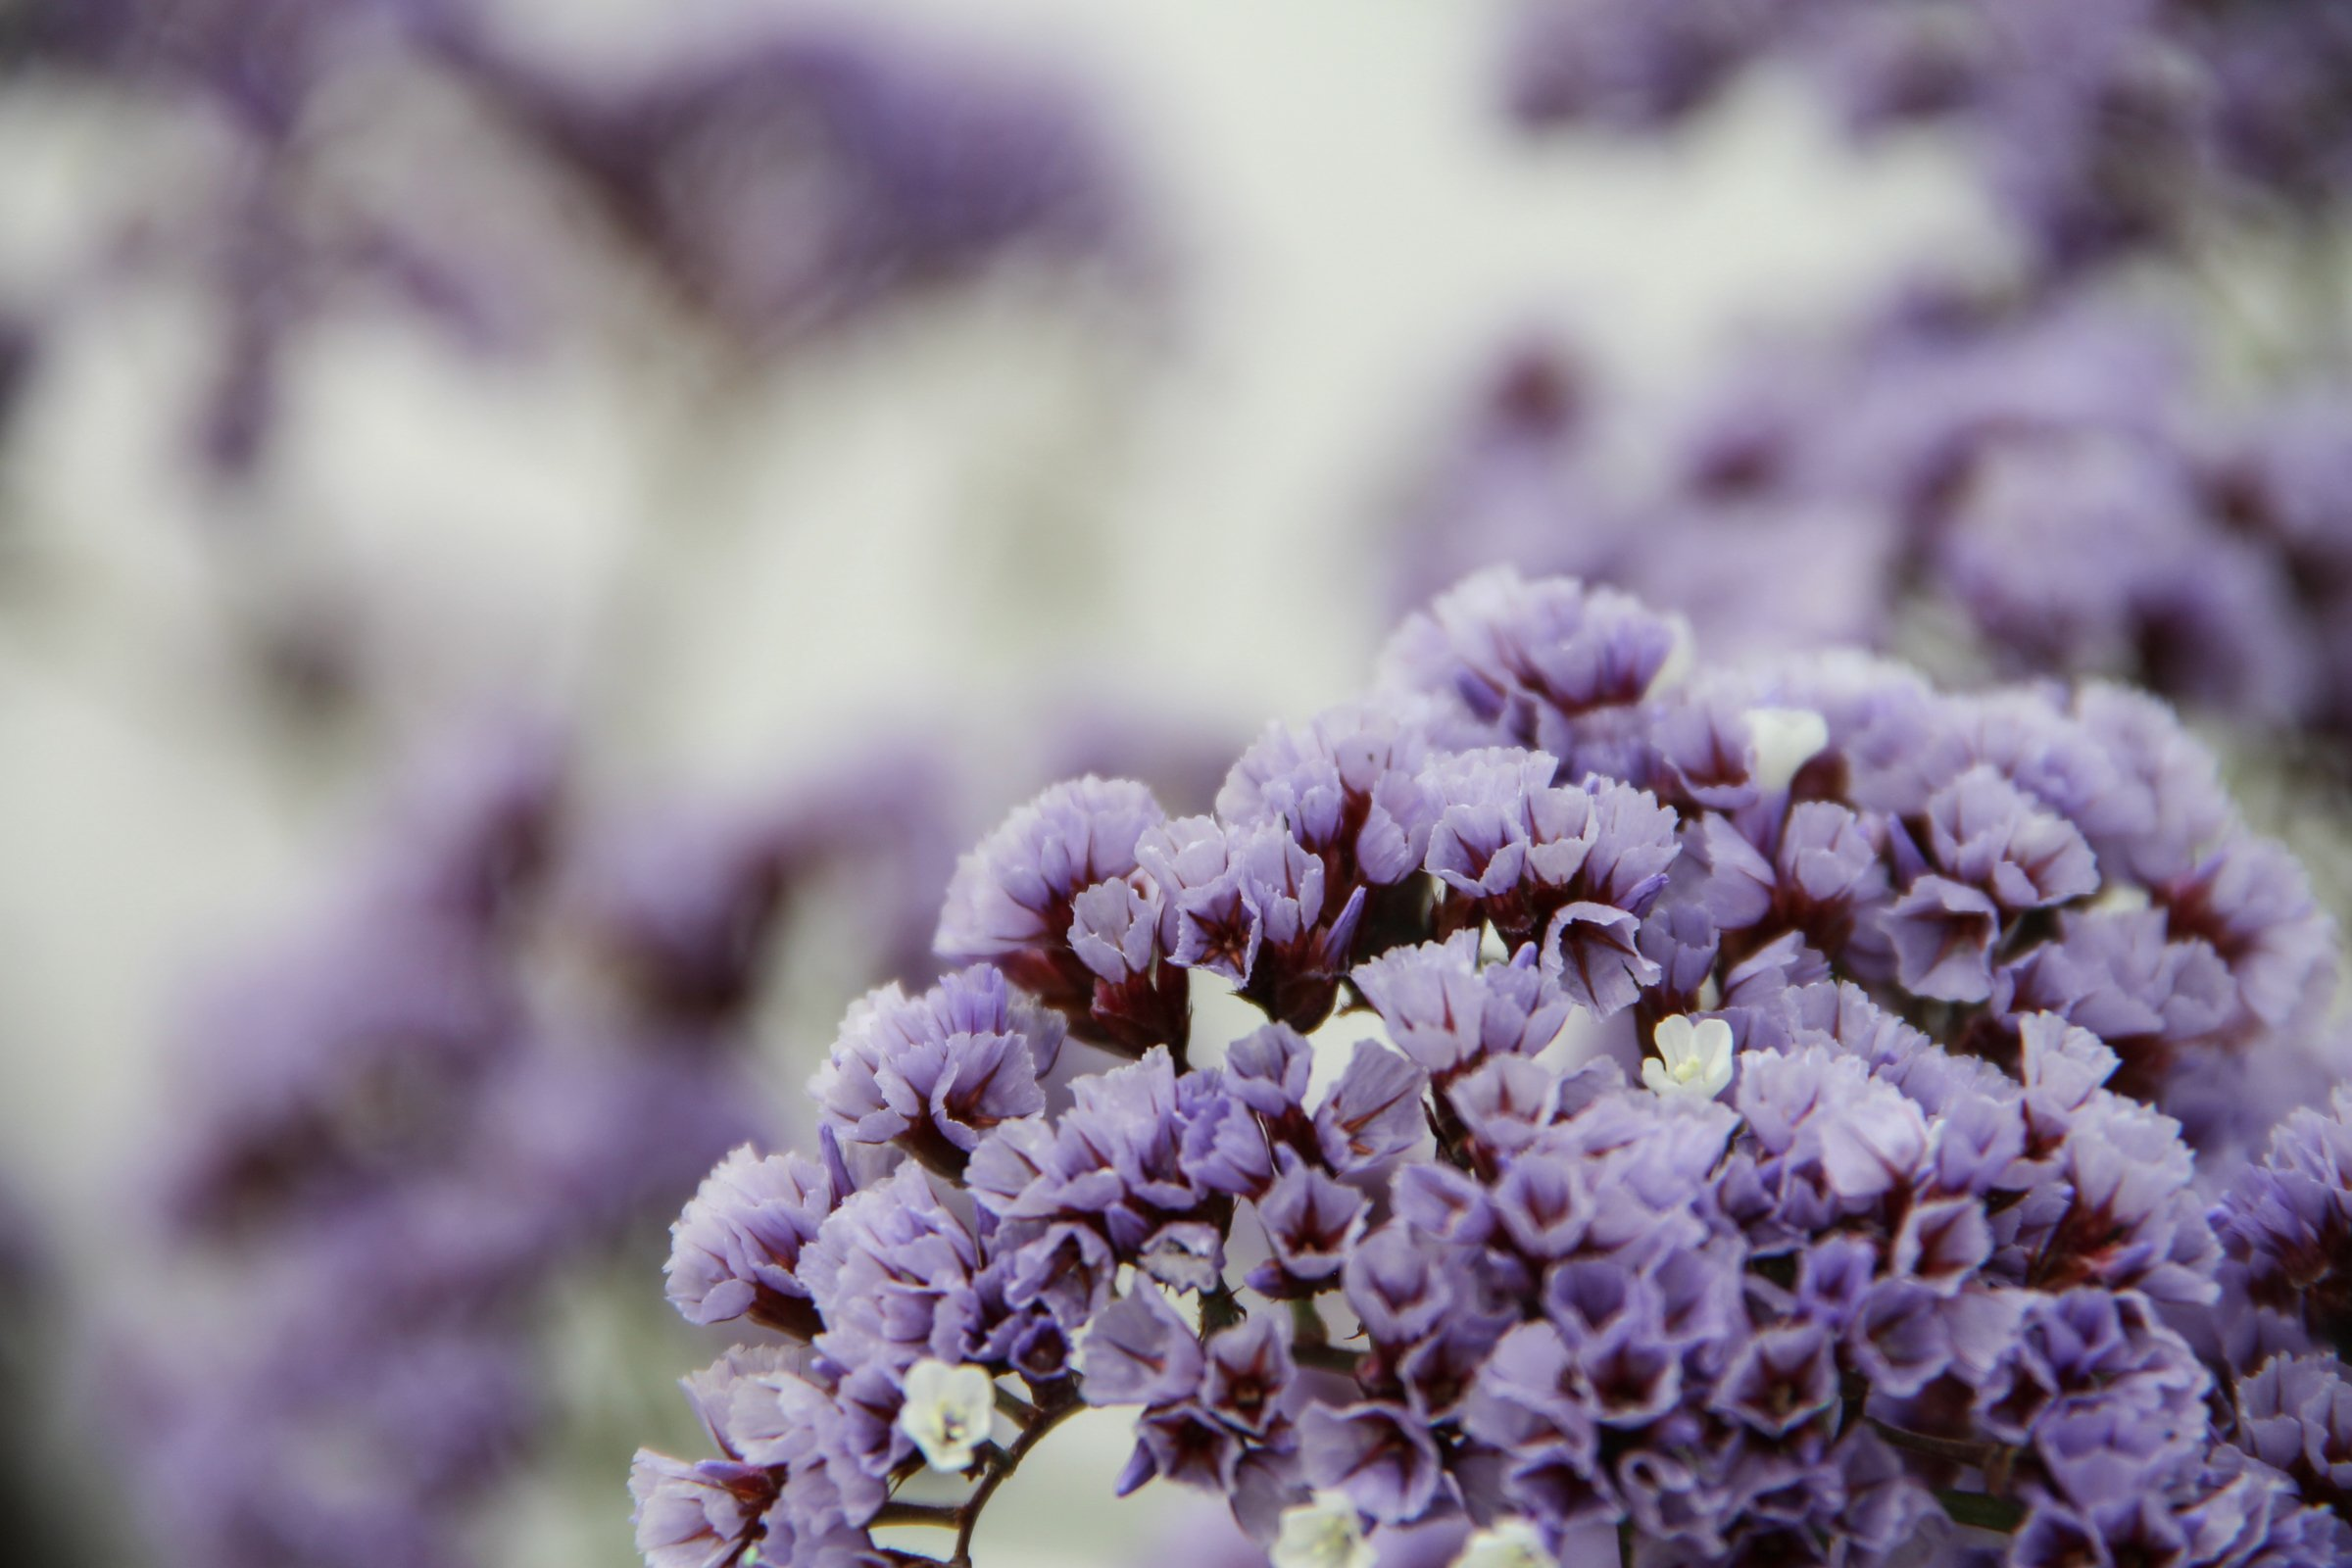 Free stock photo of purple white statice flowers purple white statice flowers mightylinksfo